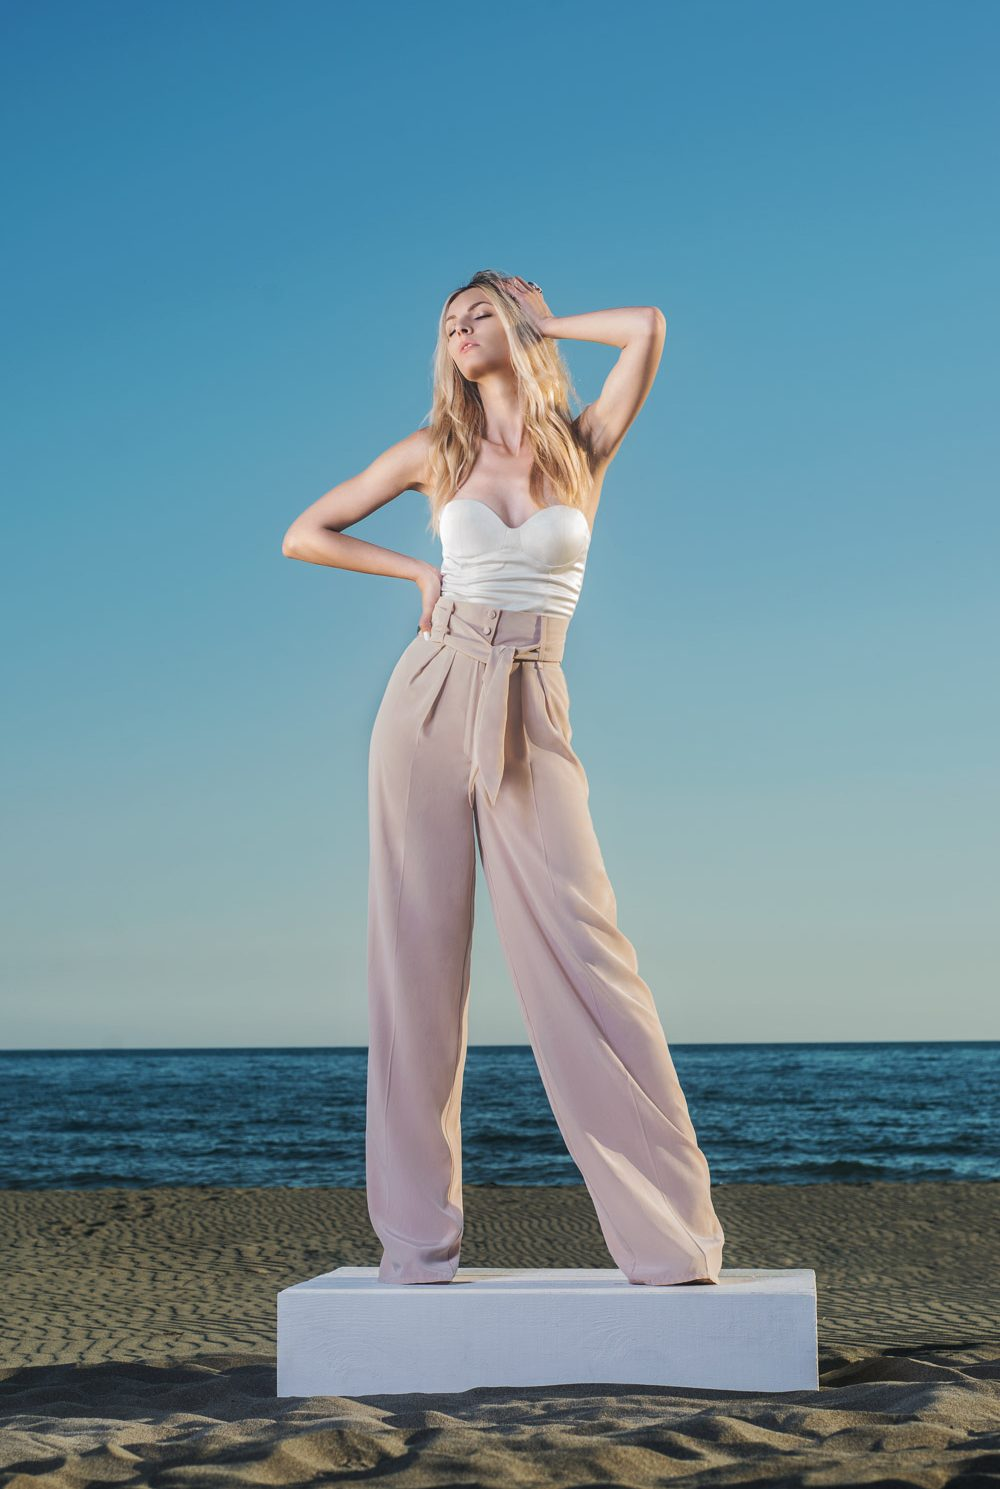 Dusty Rose / White Top and Rose Pants